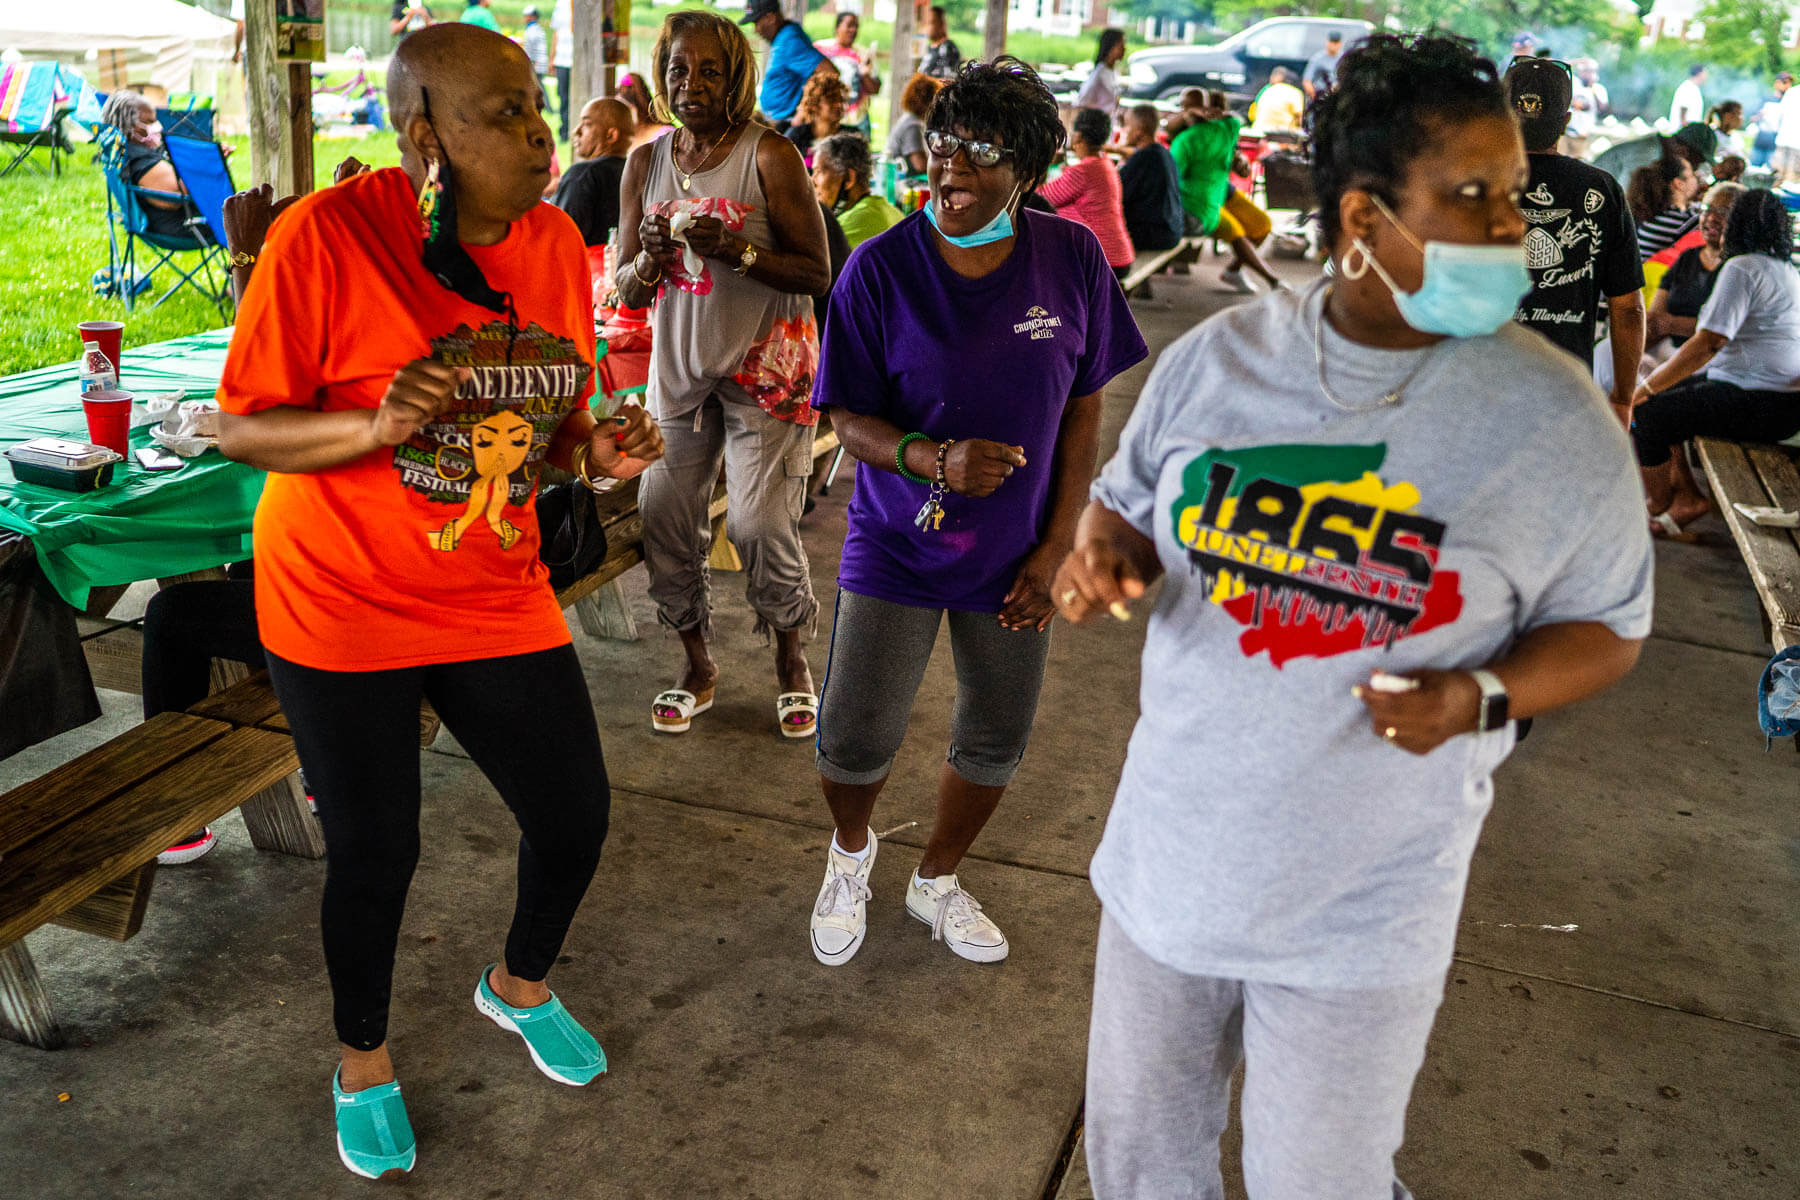 Women of Turner Station dance during a Juneteenth party.